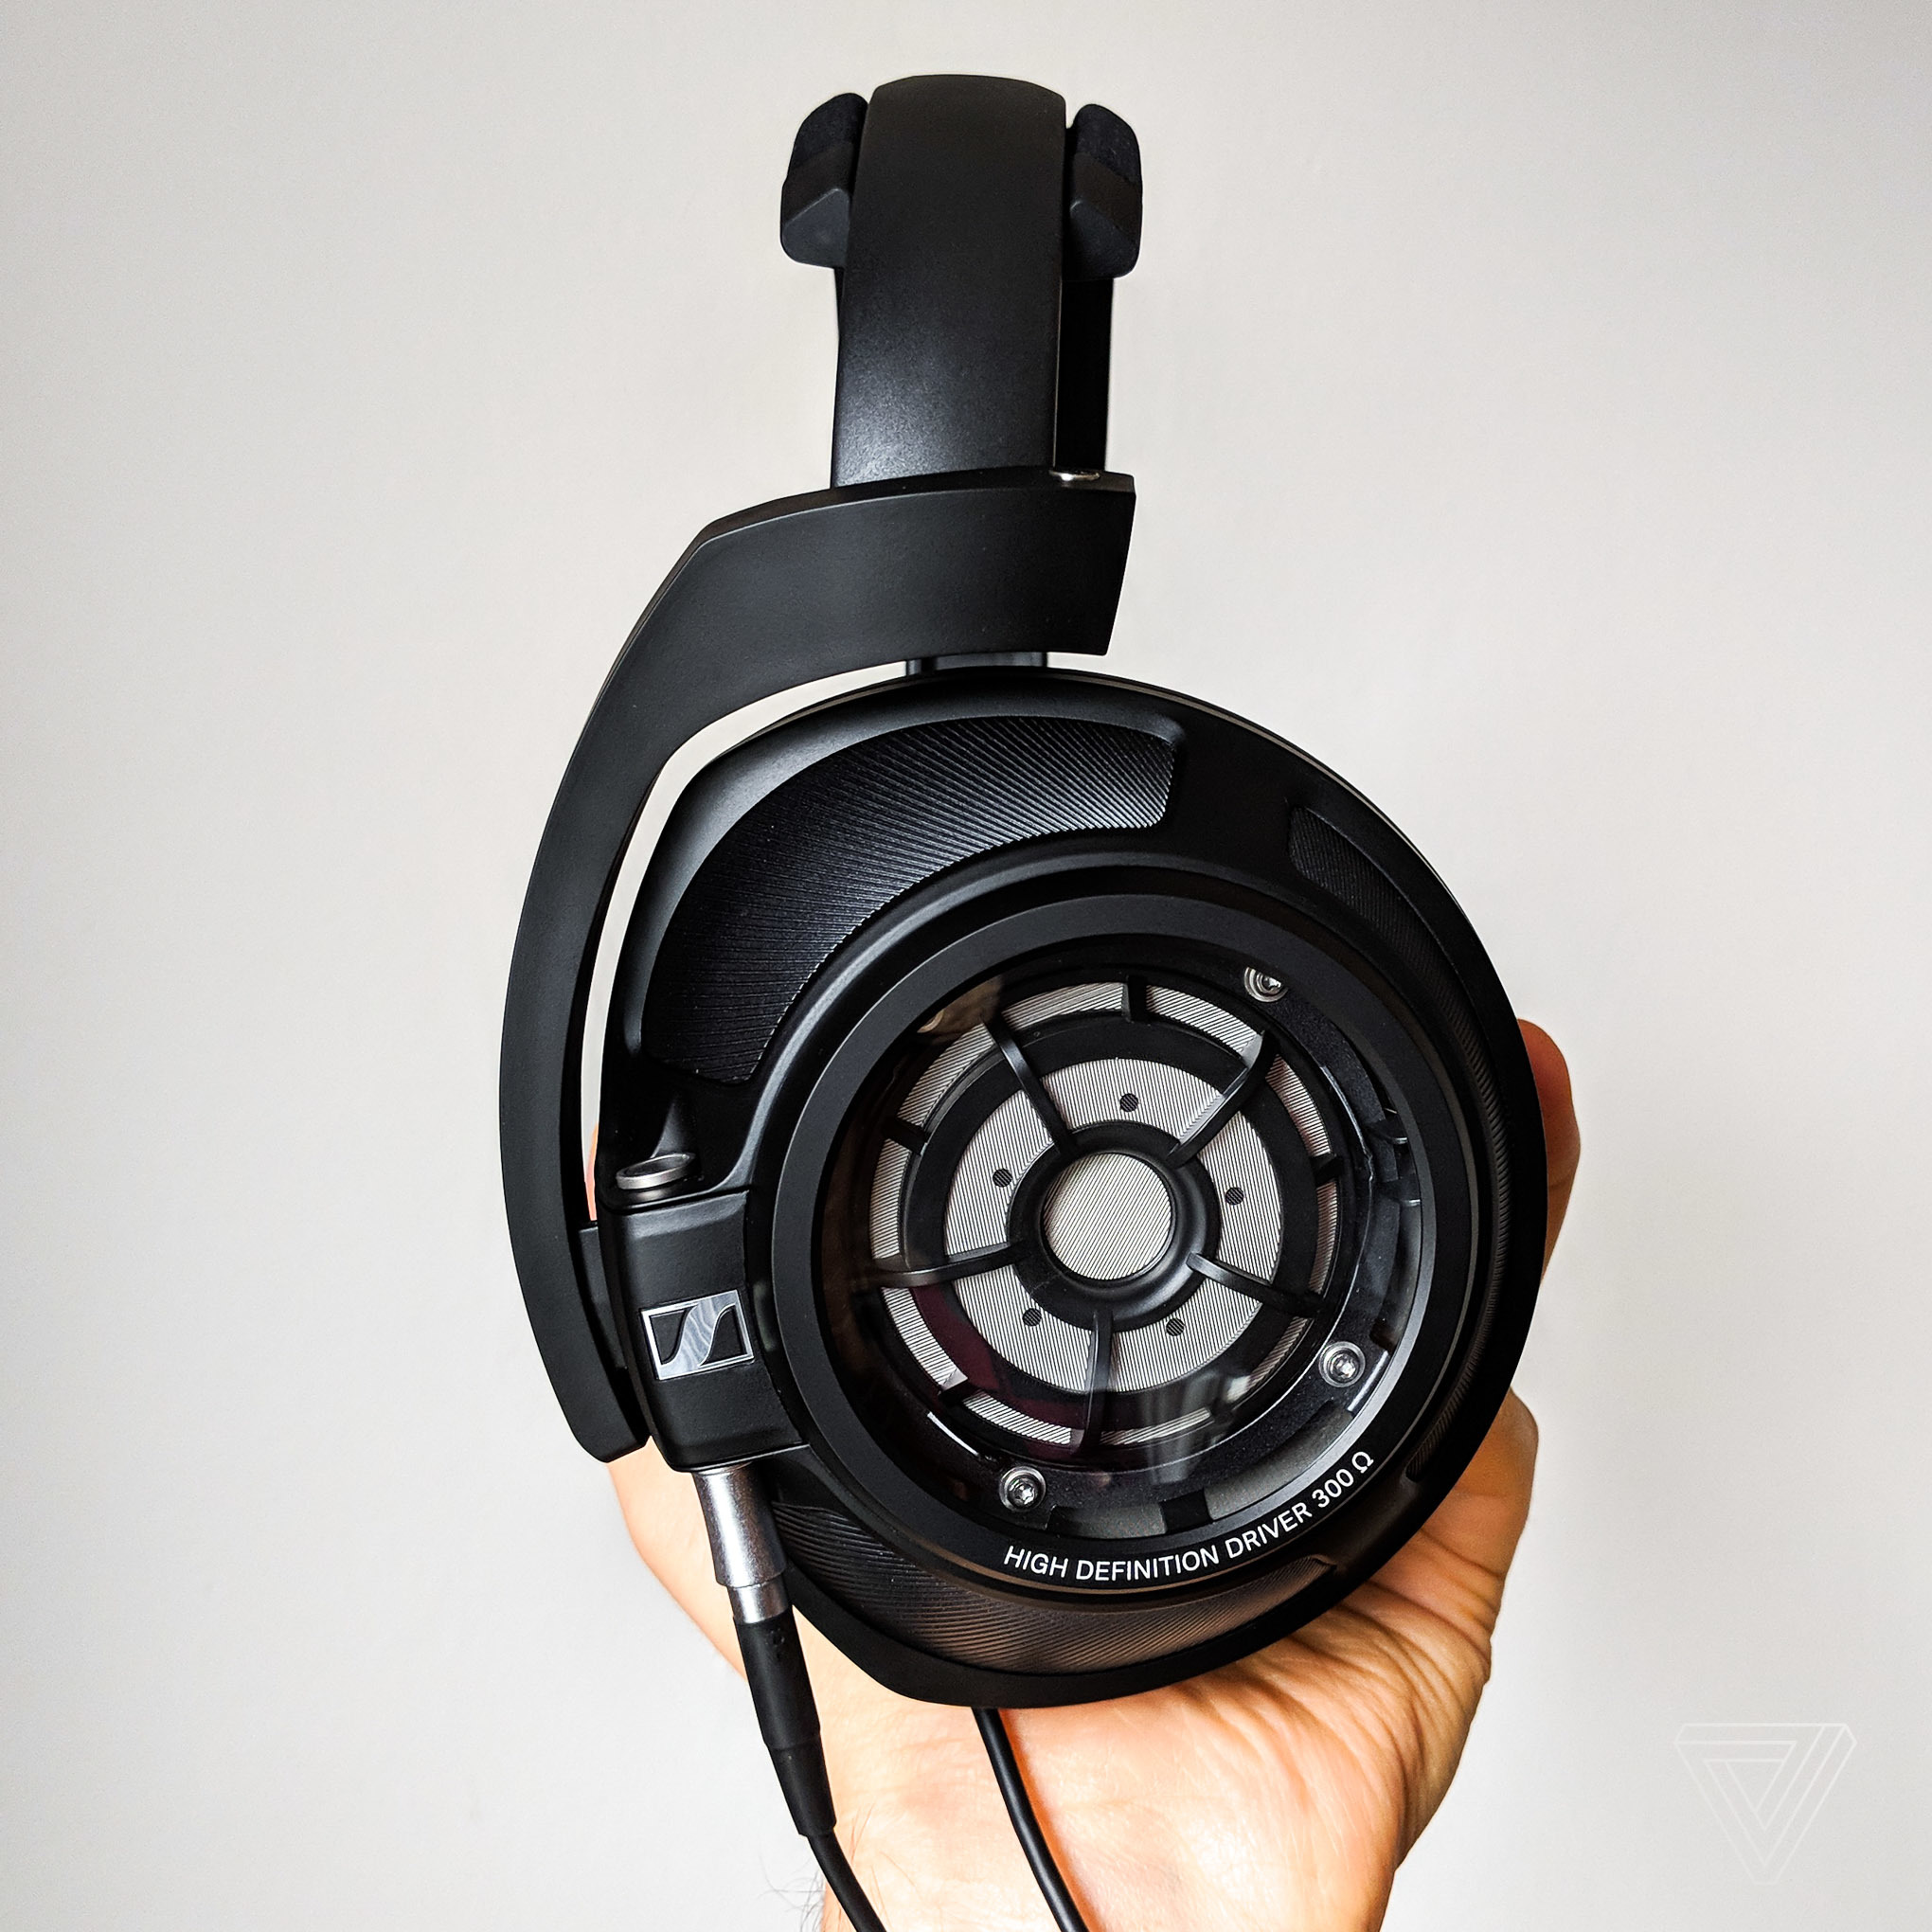 Sennheiser Hd820 Review Too Closed For Comfort The Verge